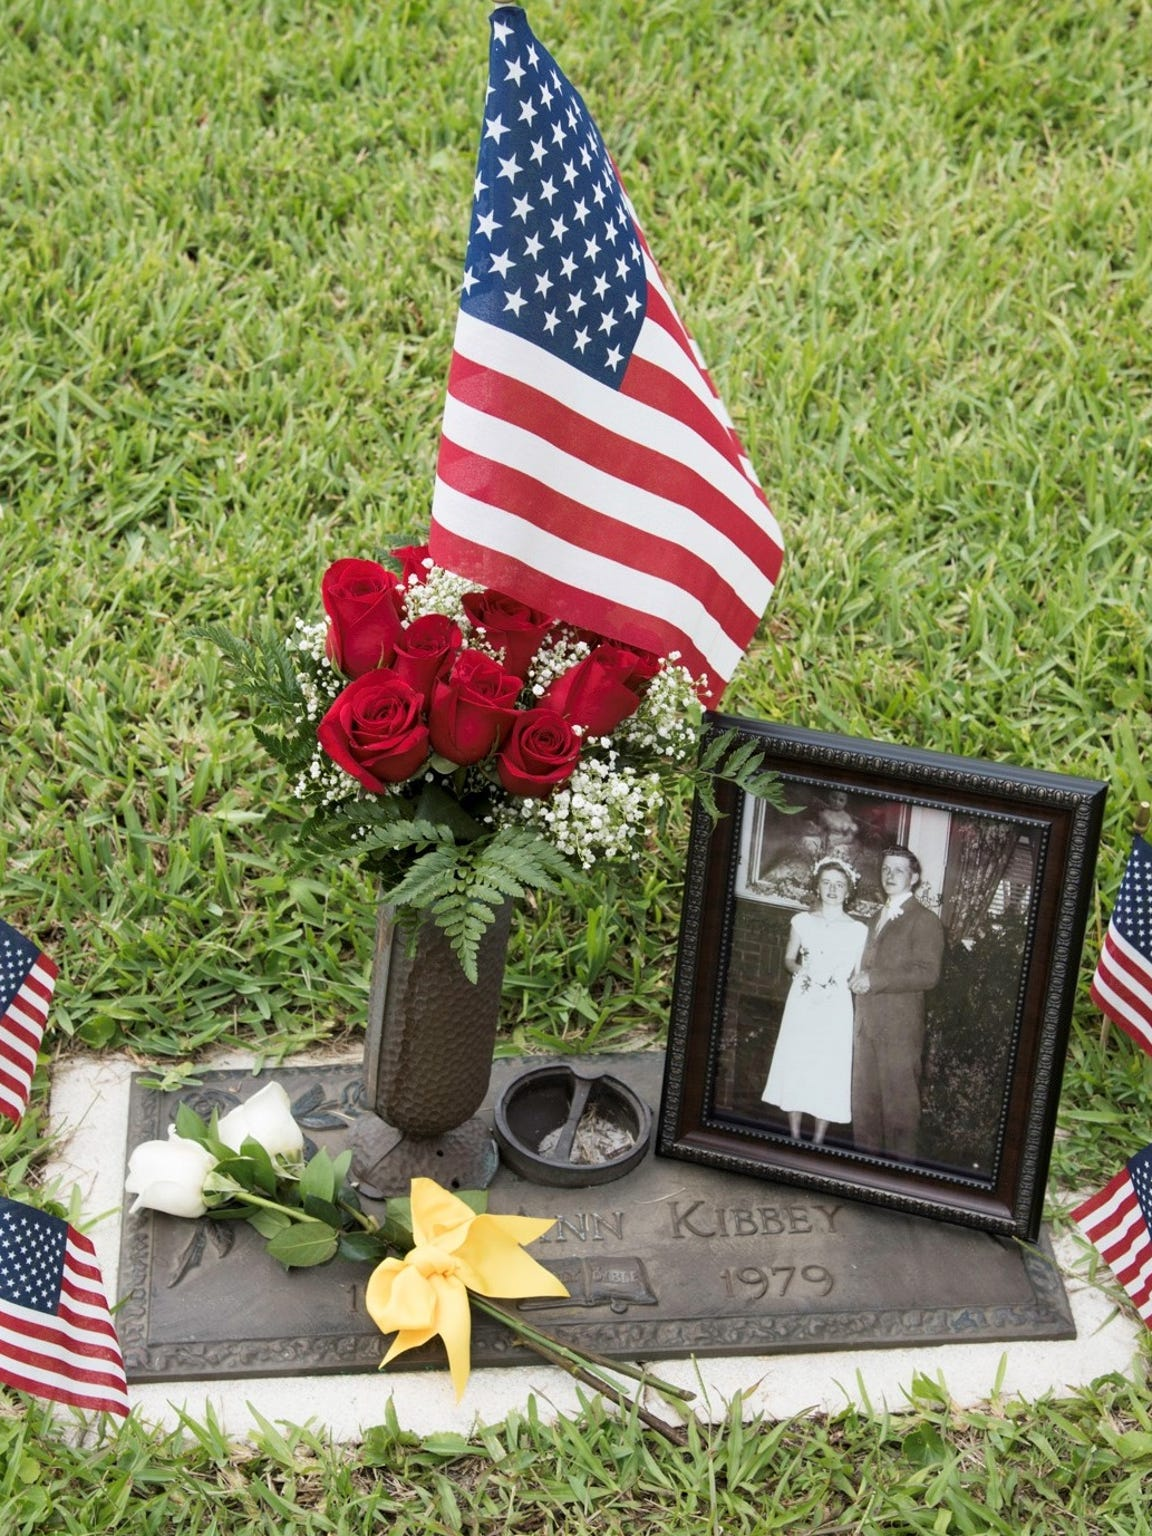 Mary Ann Kibbey's family decorated her gravesite in August at Florida Memorial Gardens in Rockledge.